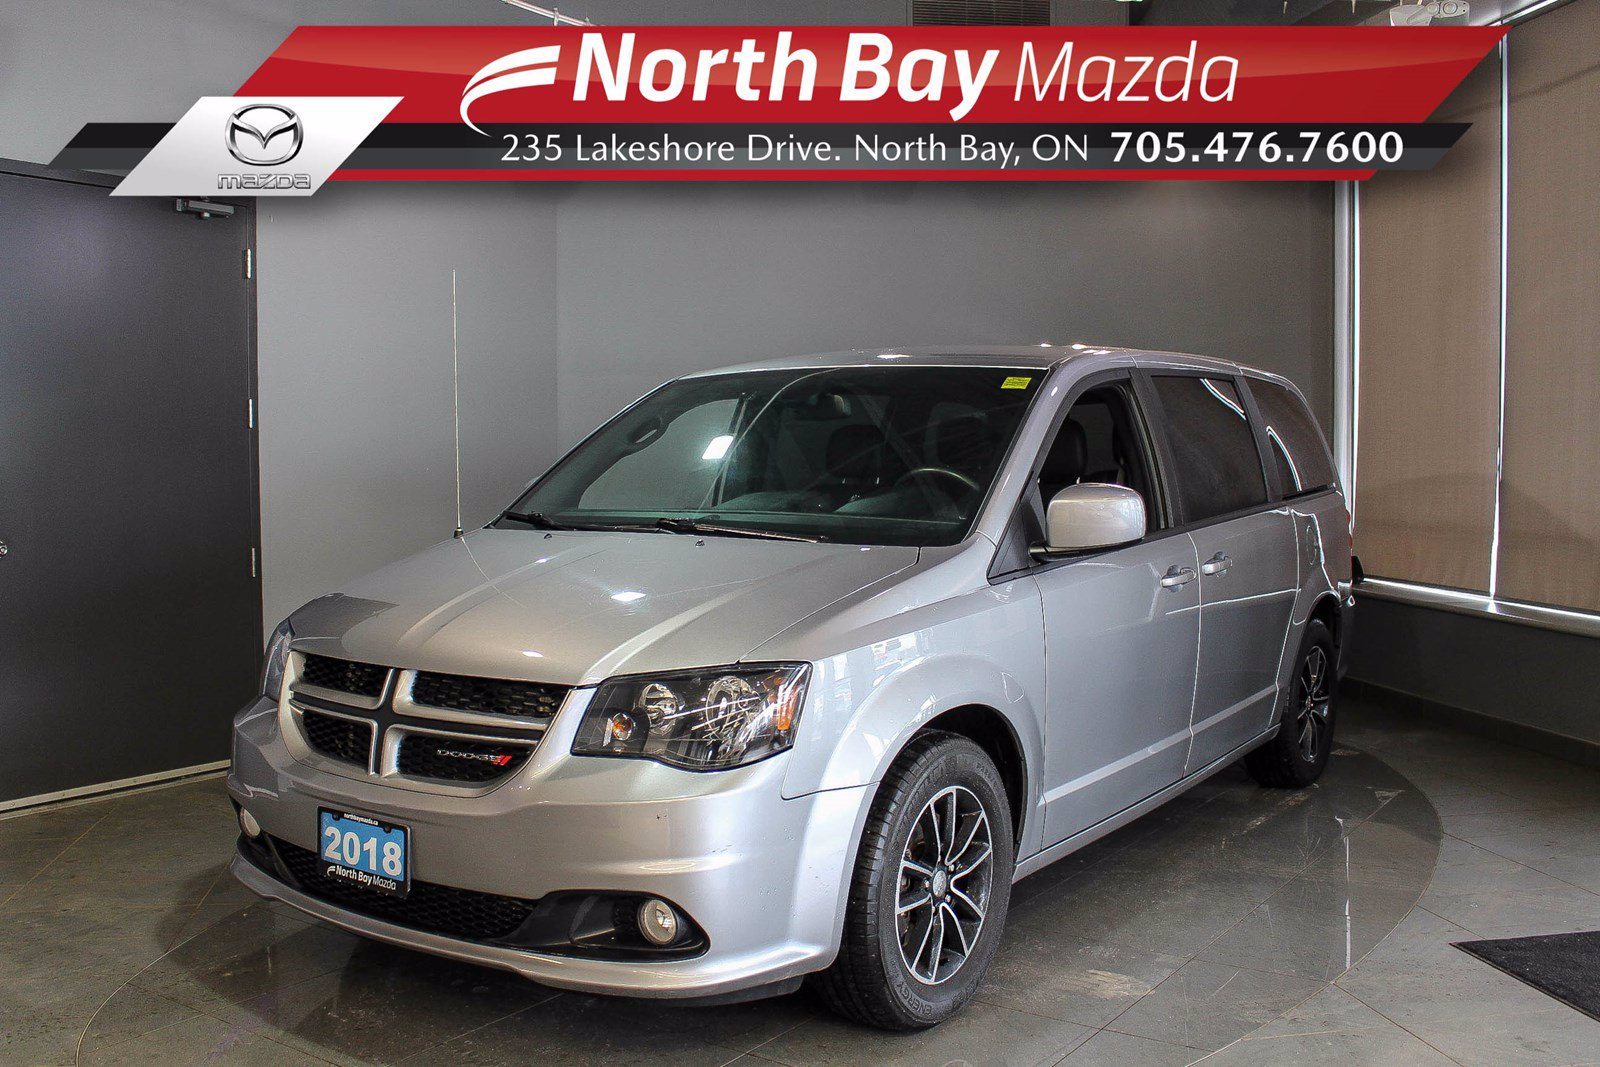 Pre-Owned 2018 Dodge Grand Caravan GT - Virtual Tour & Curbside Delivery Available!